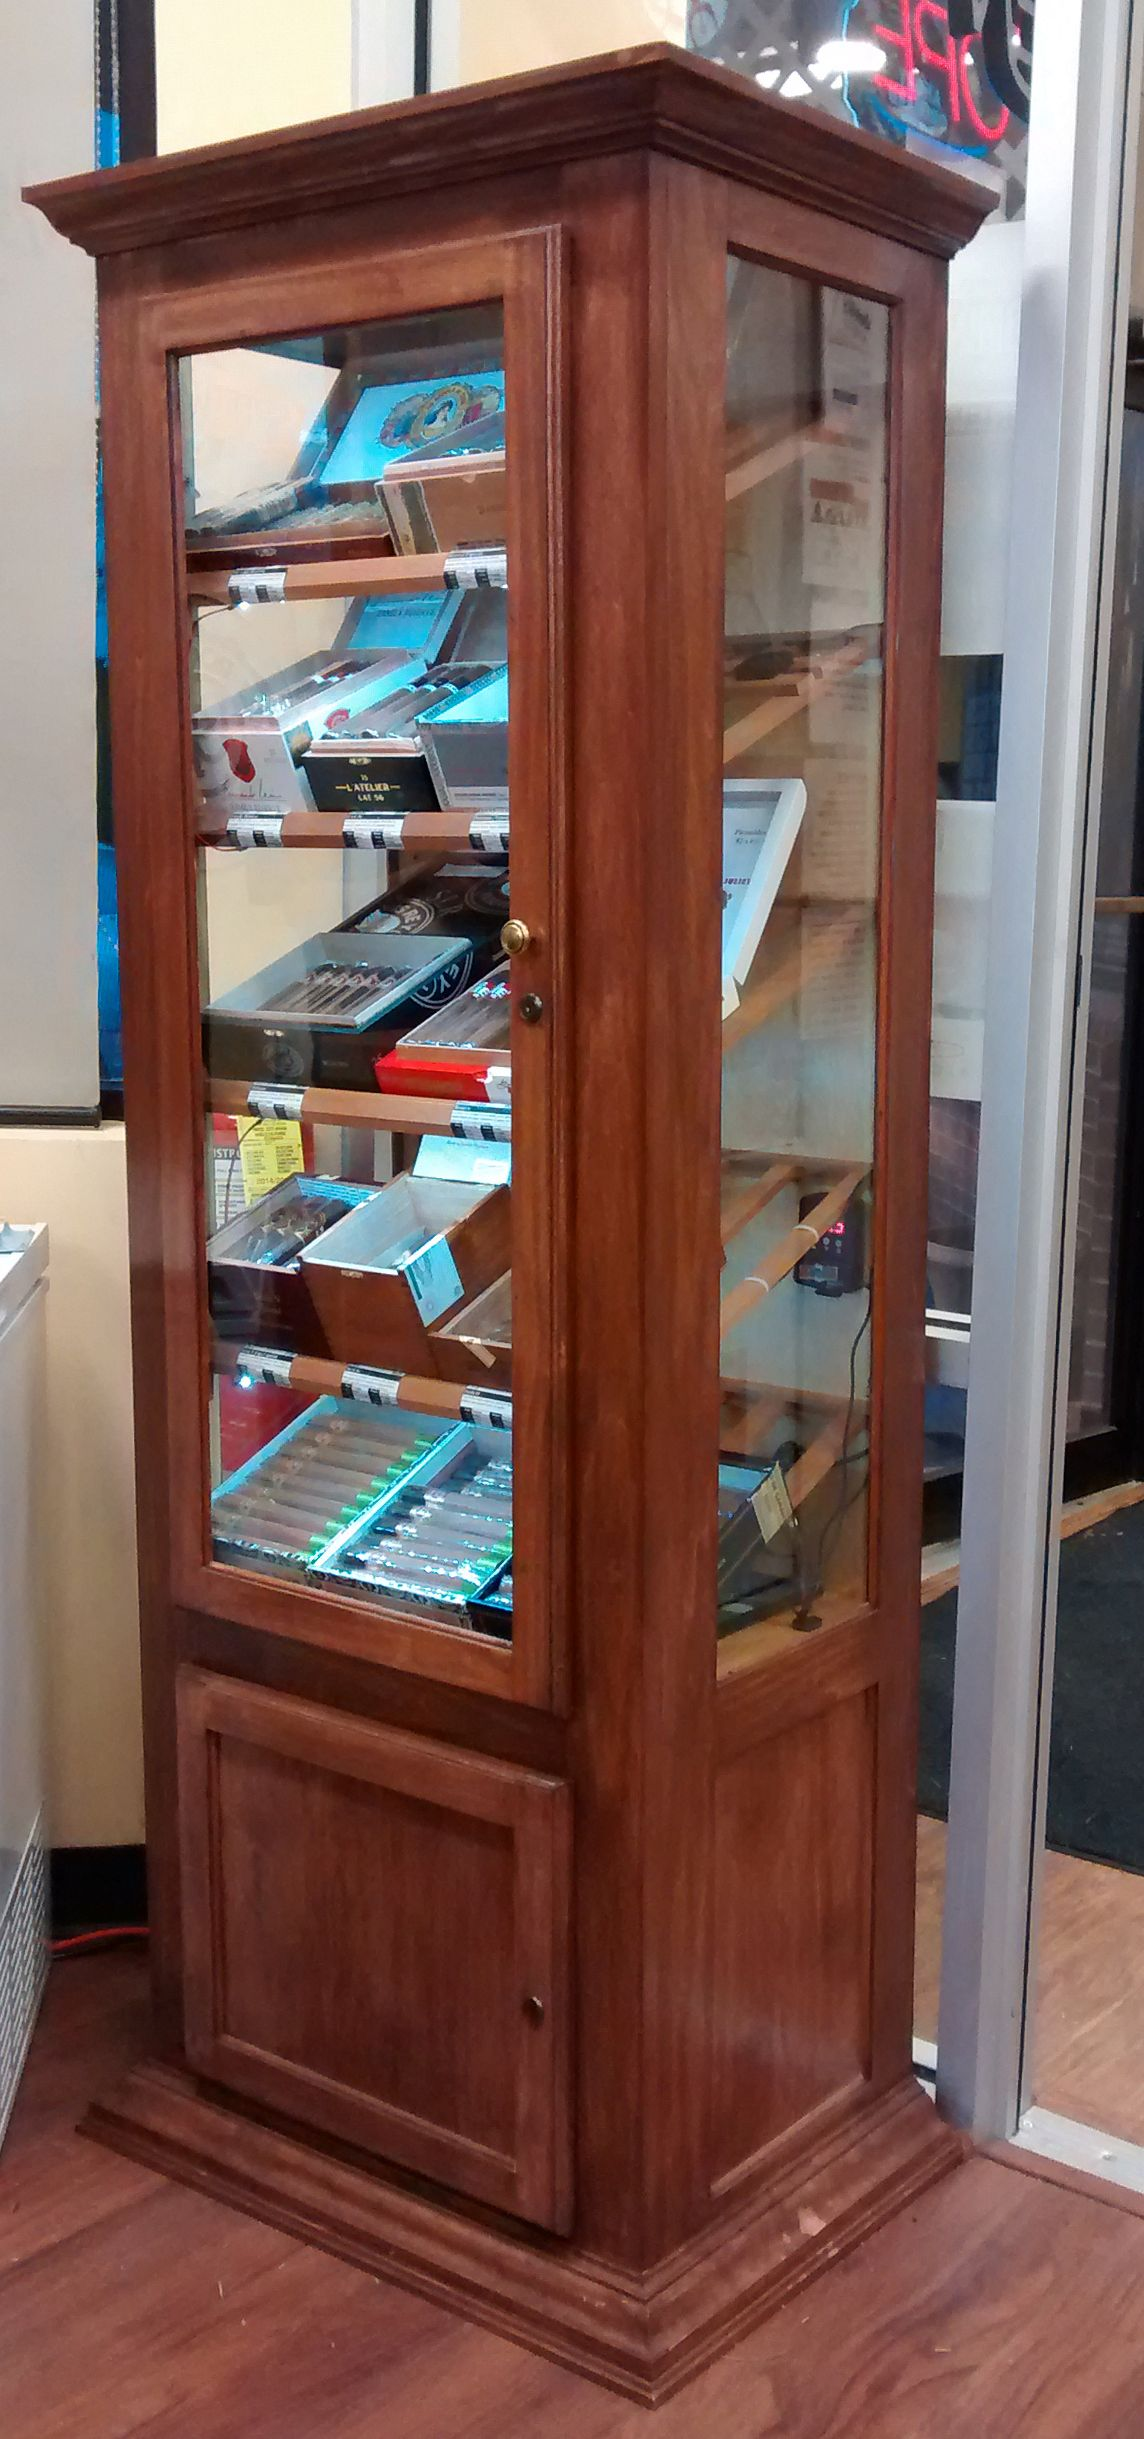 Handmade Tower Retail Humidor Display Cabinet by Humidor Works